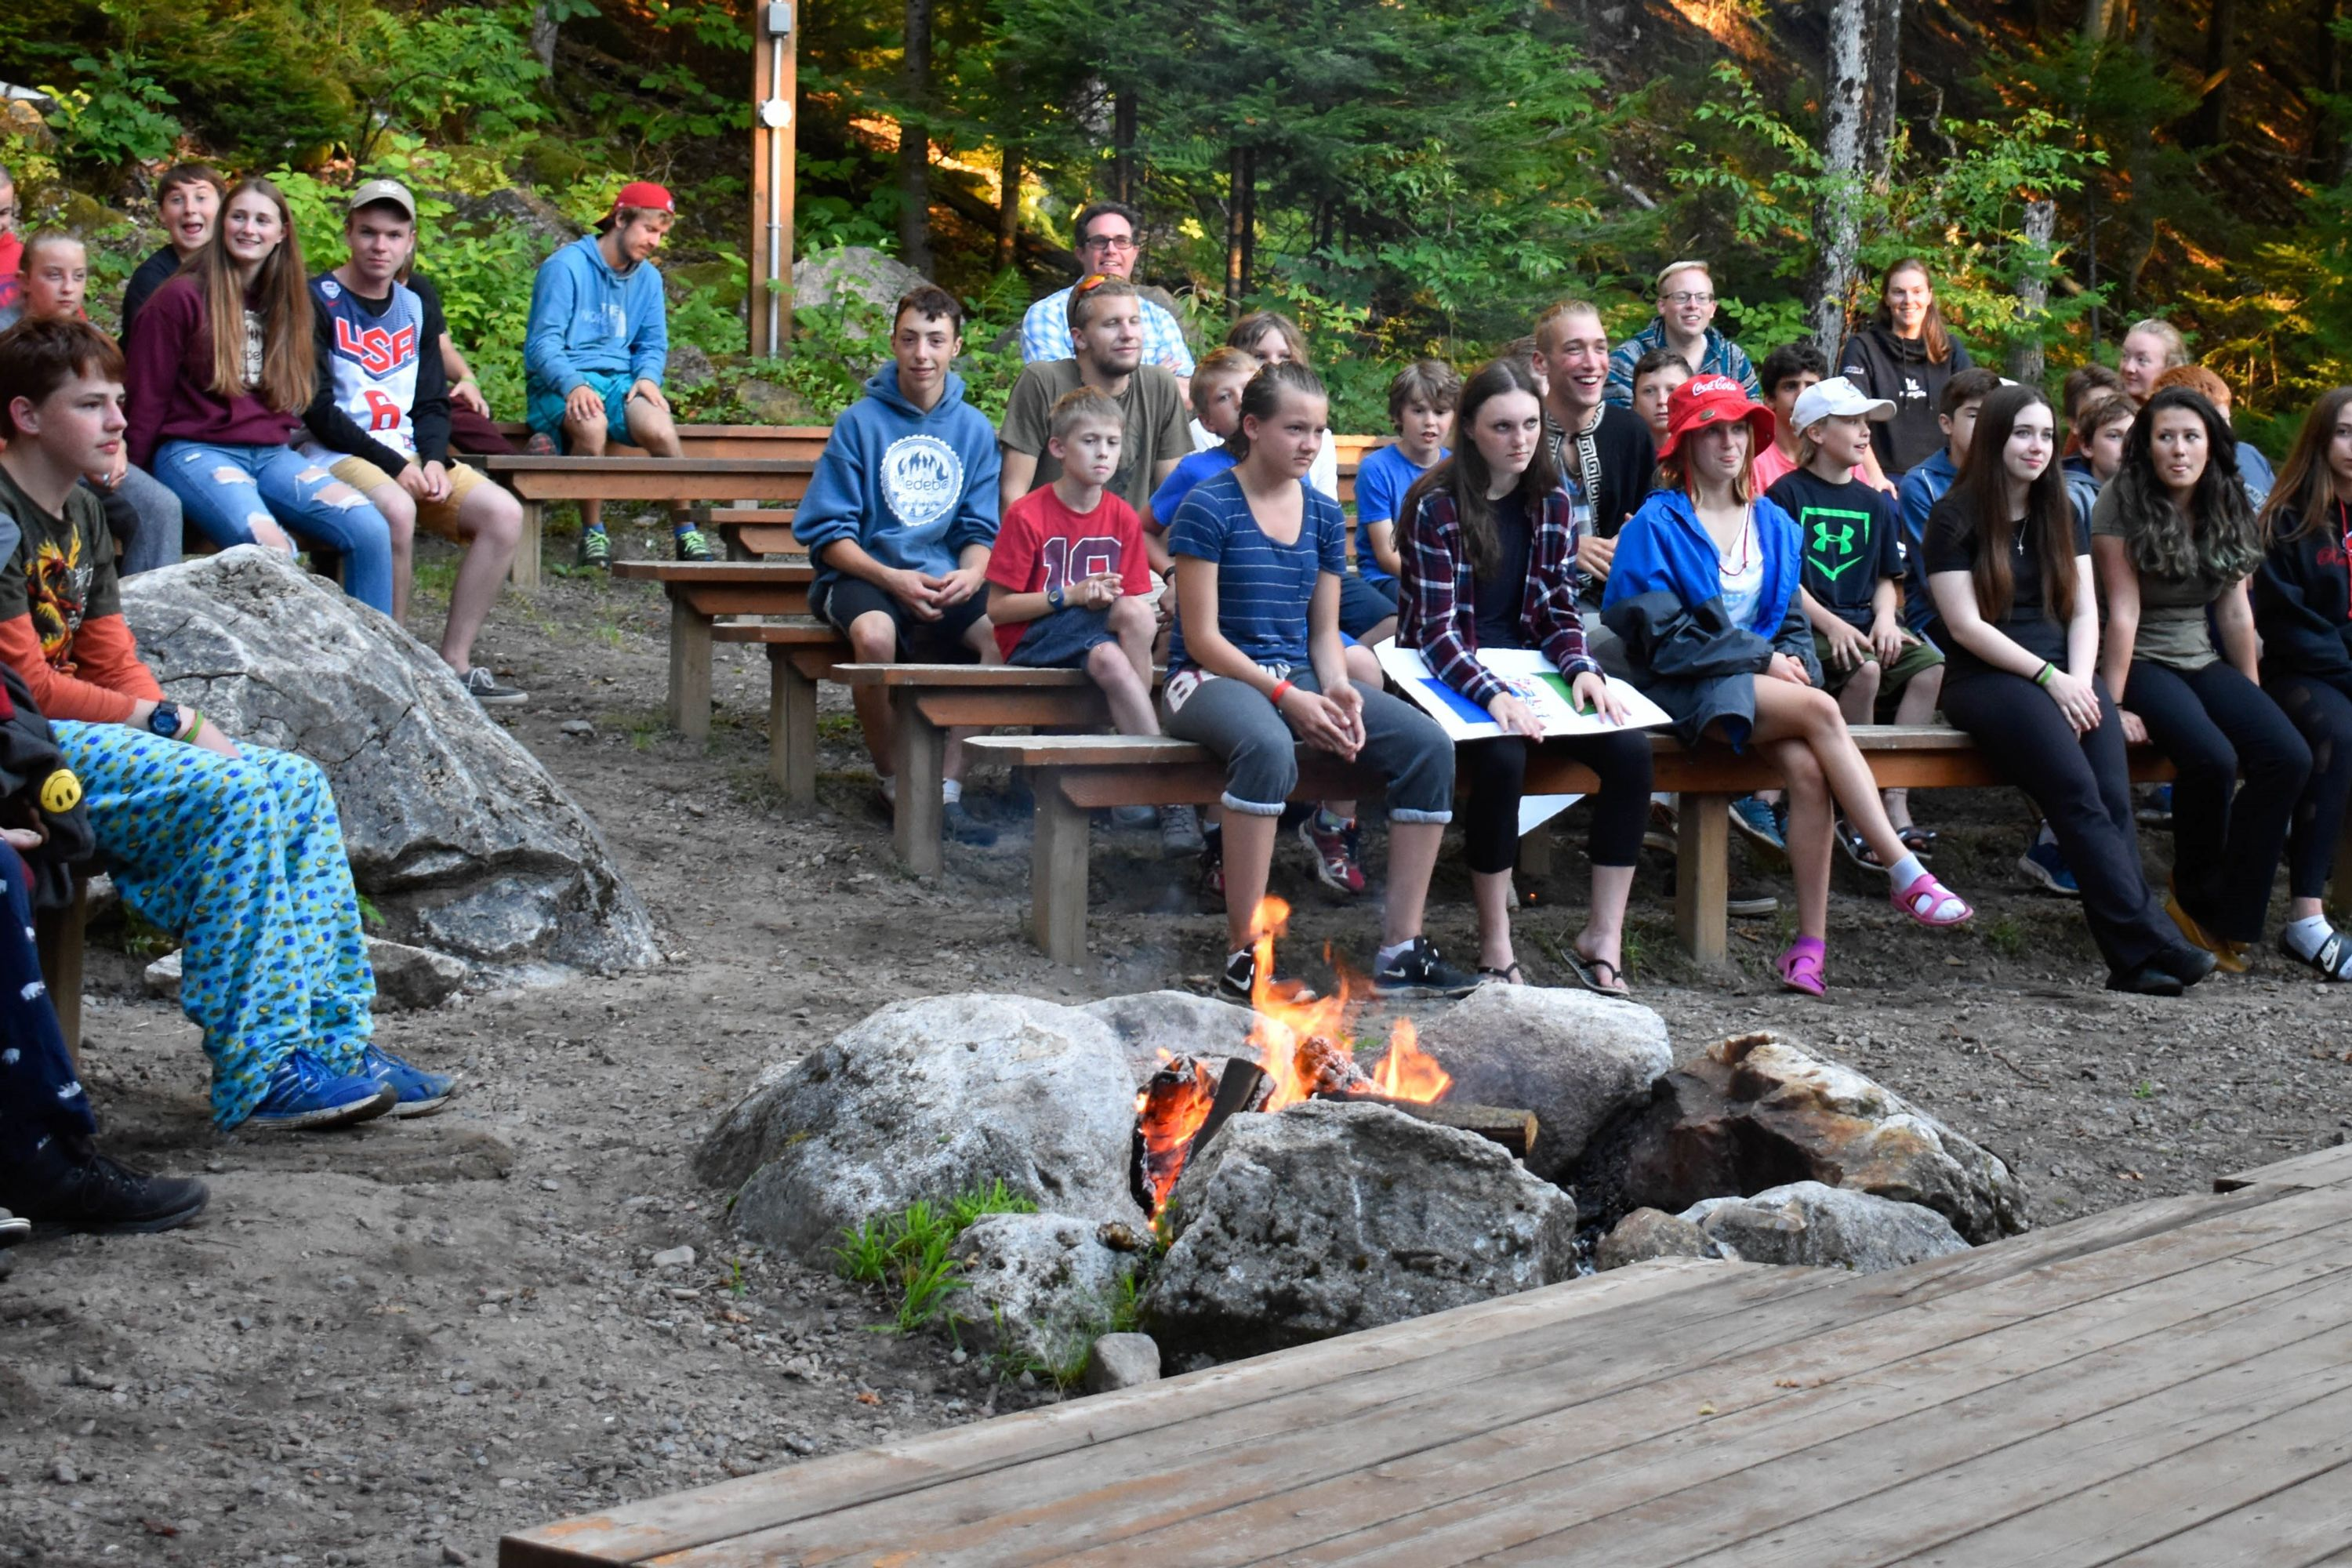 Summer Camp group at a fire in haliburton, ontario